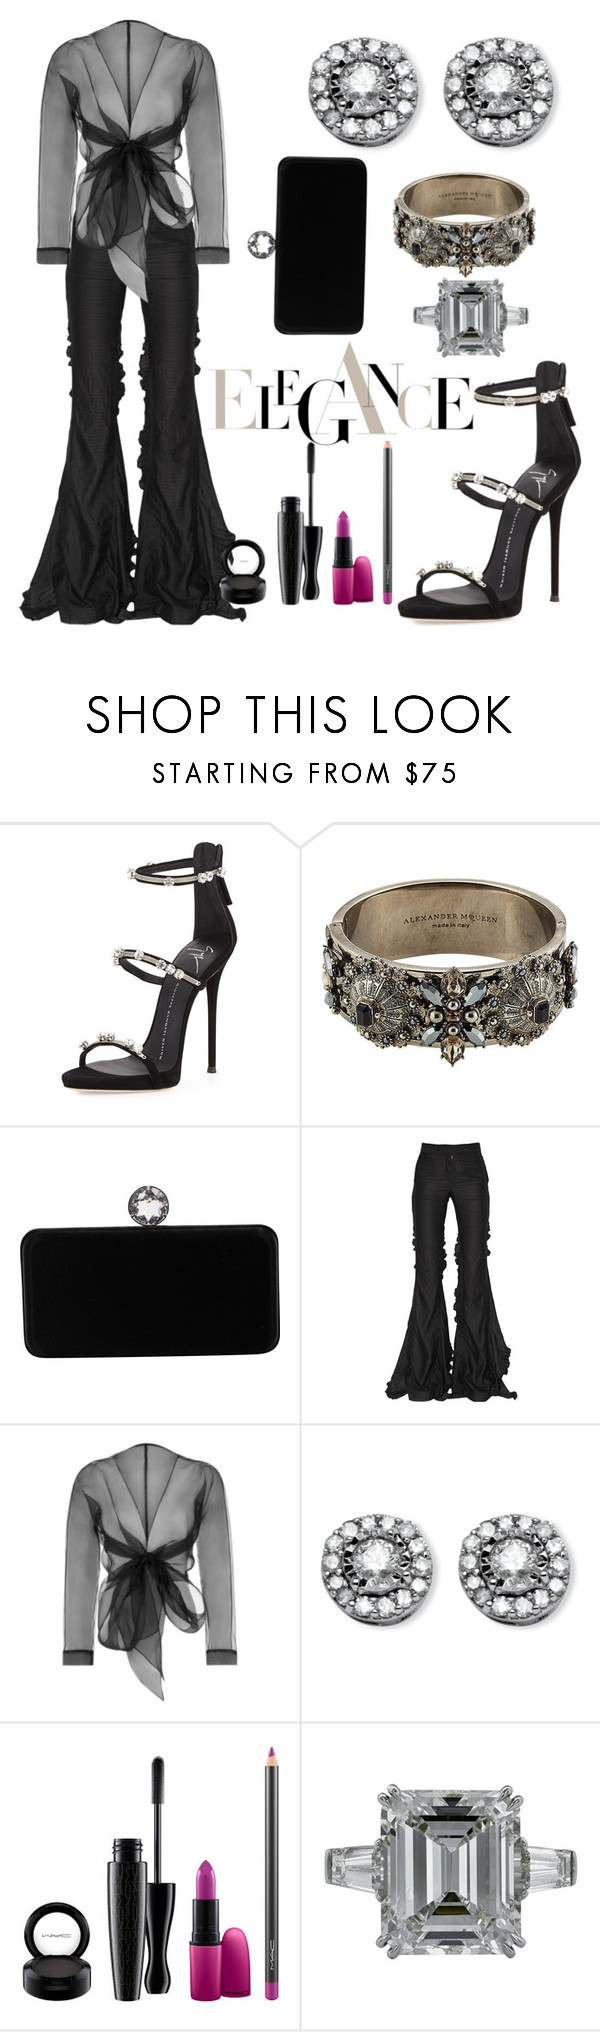 """Opera Night"" by cbmalloy ❤ liked on Polyvore featuring Giuseppe Zanotti, Alexander McQueen, Swarovski, Marco de Vincenzo, Bianca Elgar and MAC Cosmetics"